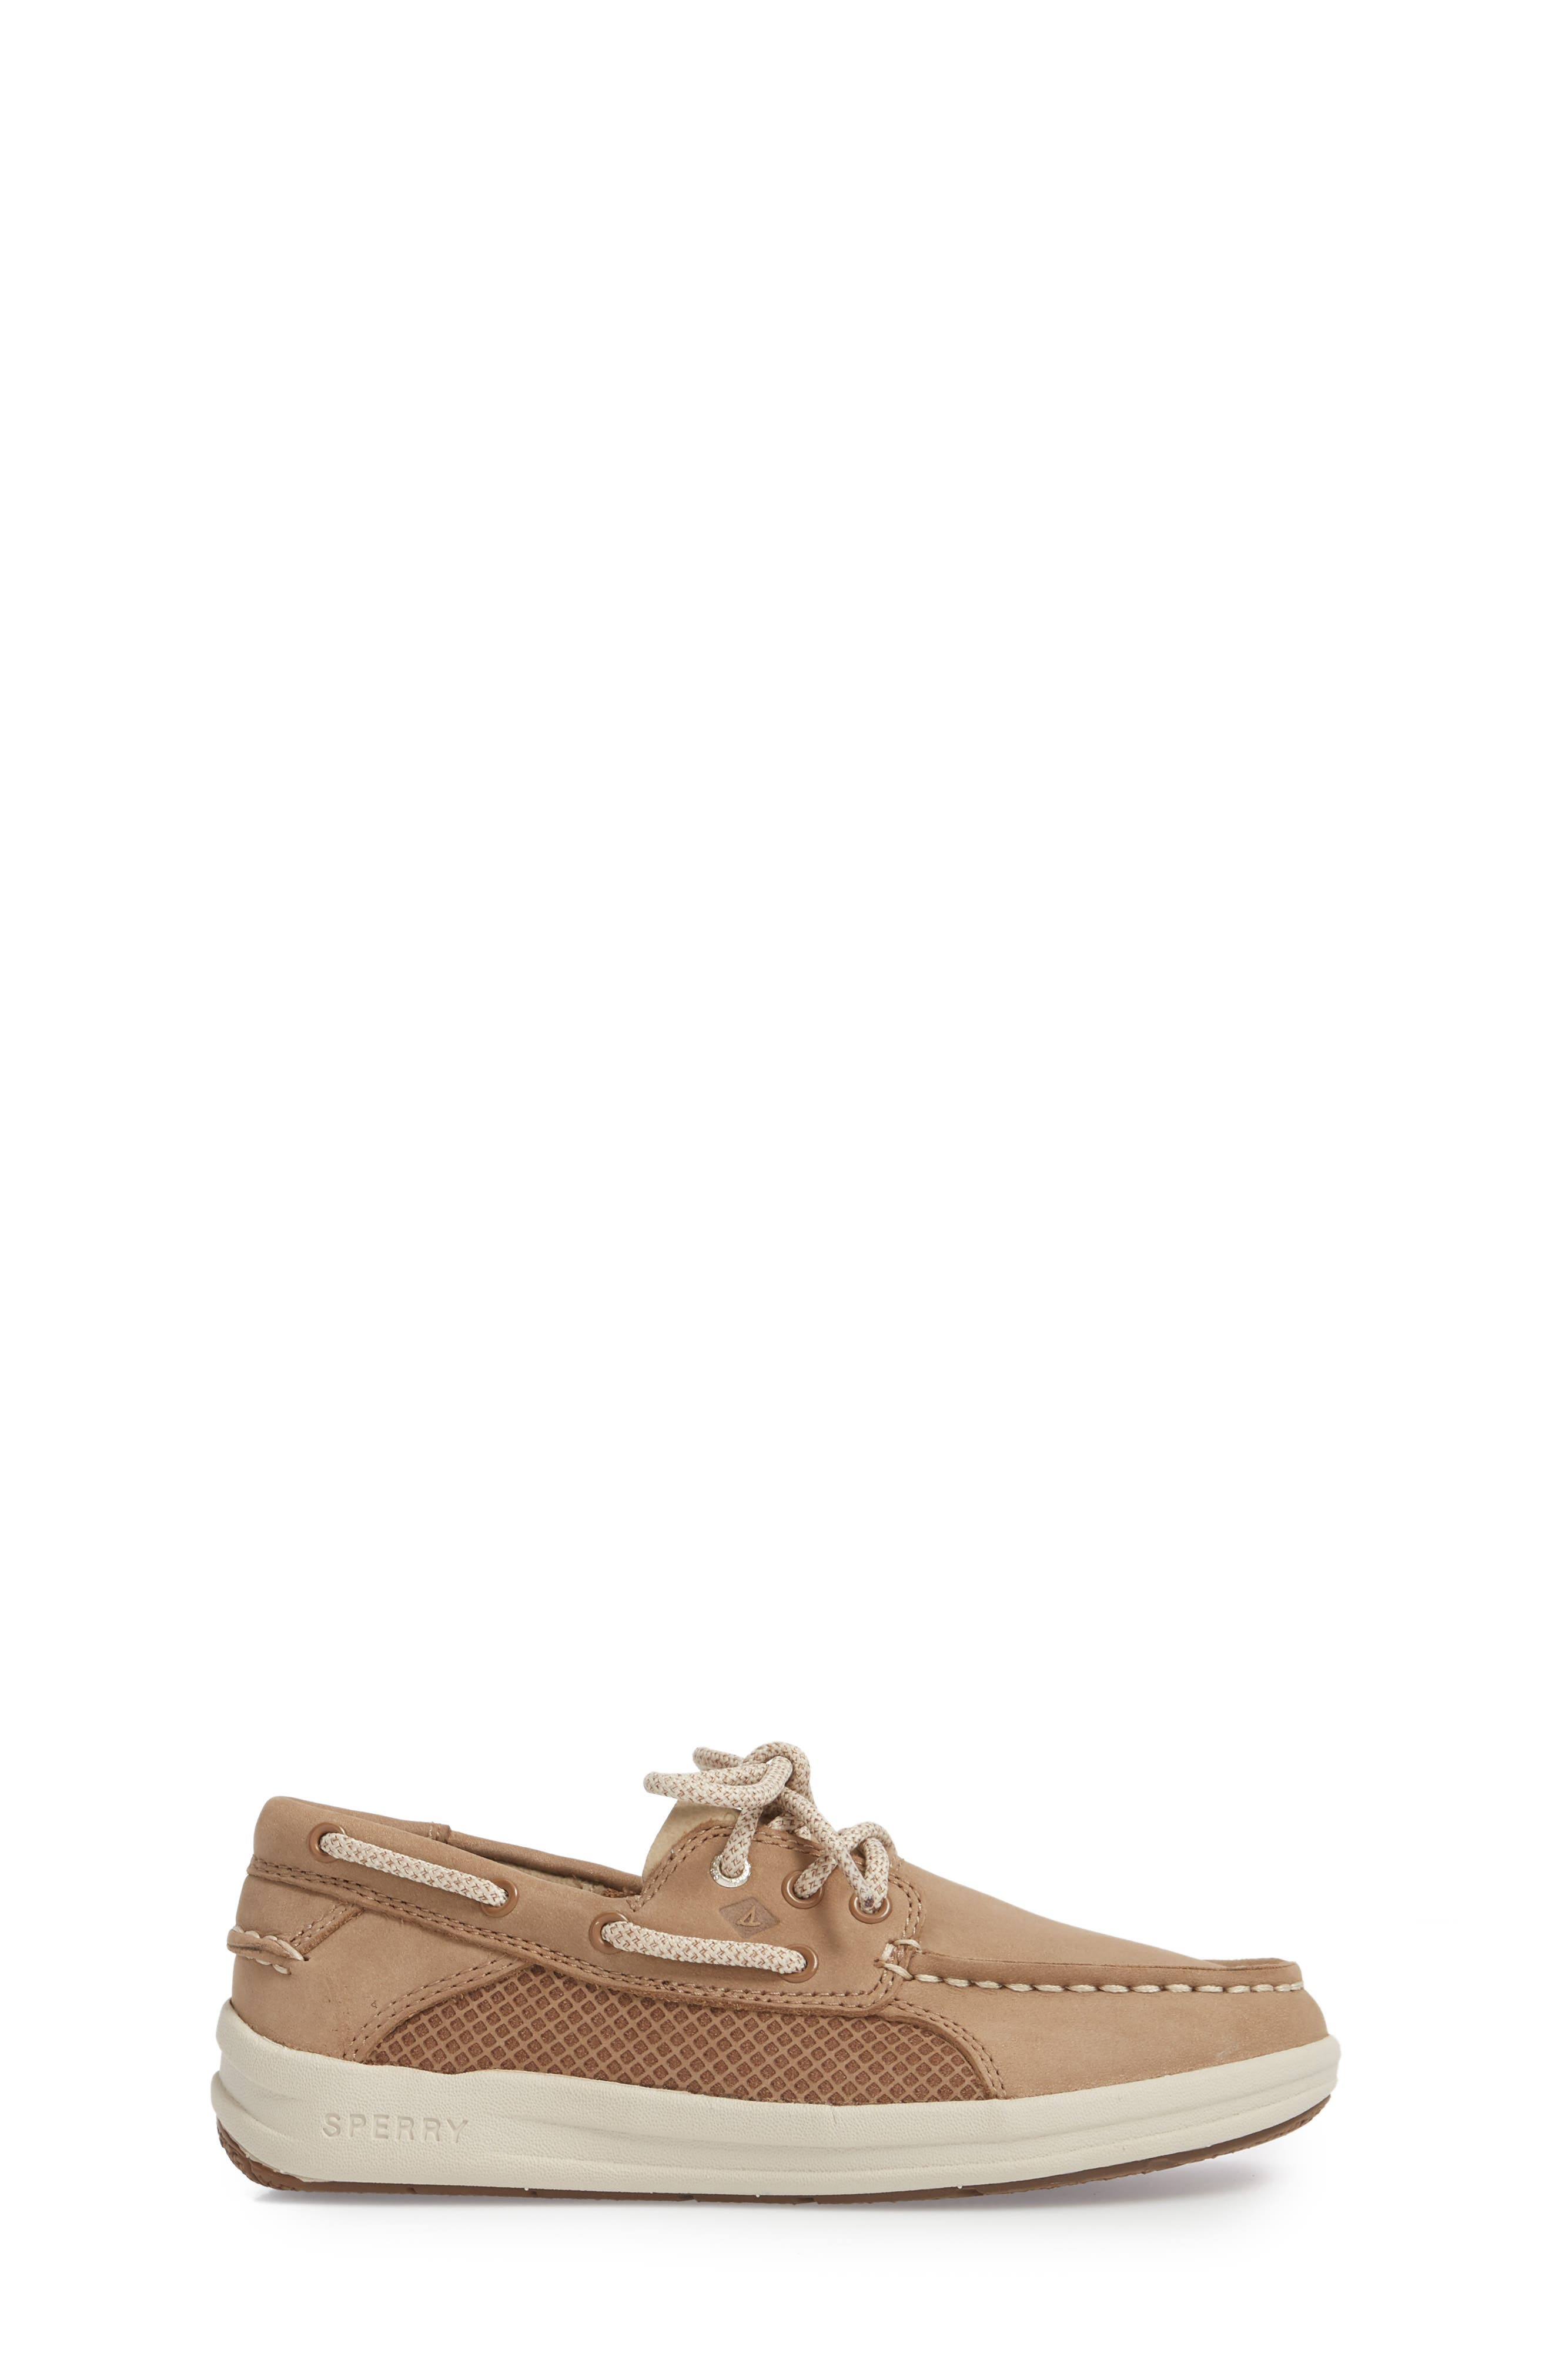 Sperry Gamefish Boat Shoe,                             Alternate thumbnail 3, color,                             270